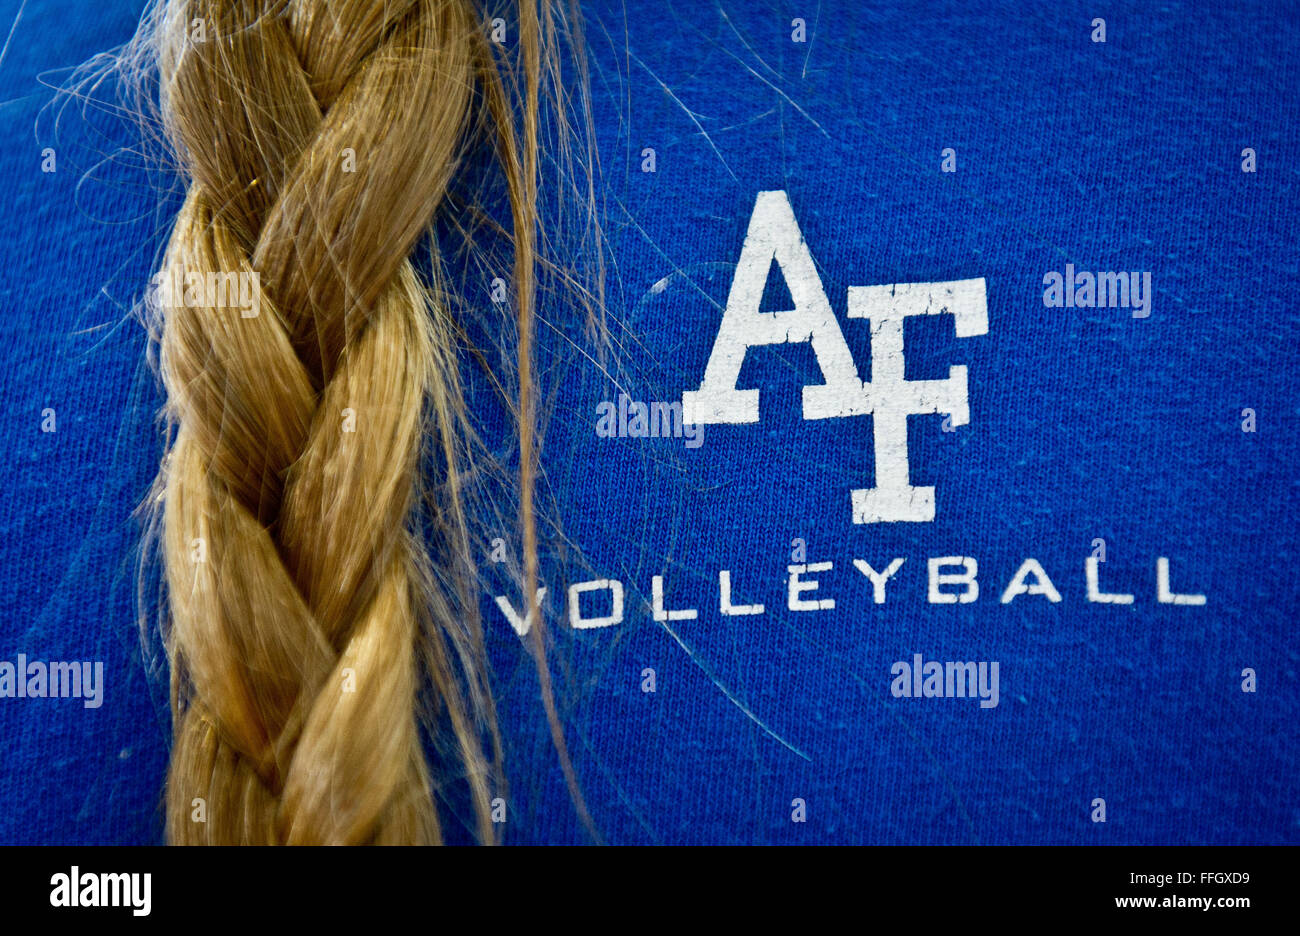 Sixteen women tried out for the Air Force Women's Volleyball team, and the 11 best were selected to compete in the - Stock Image